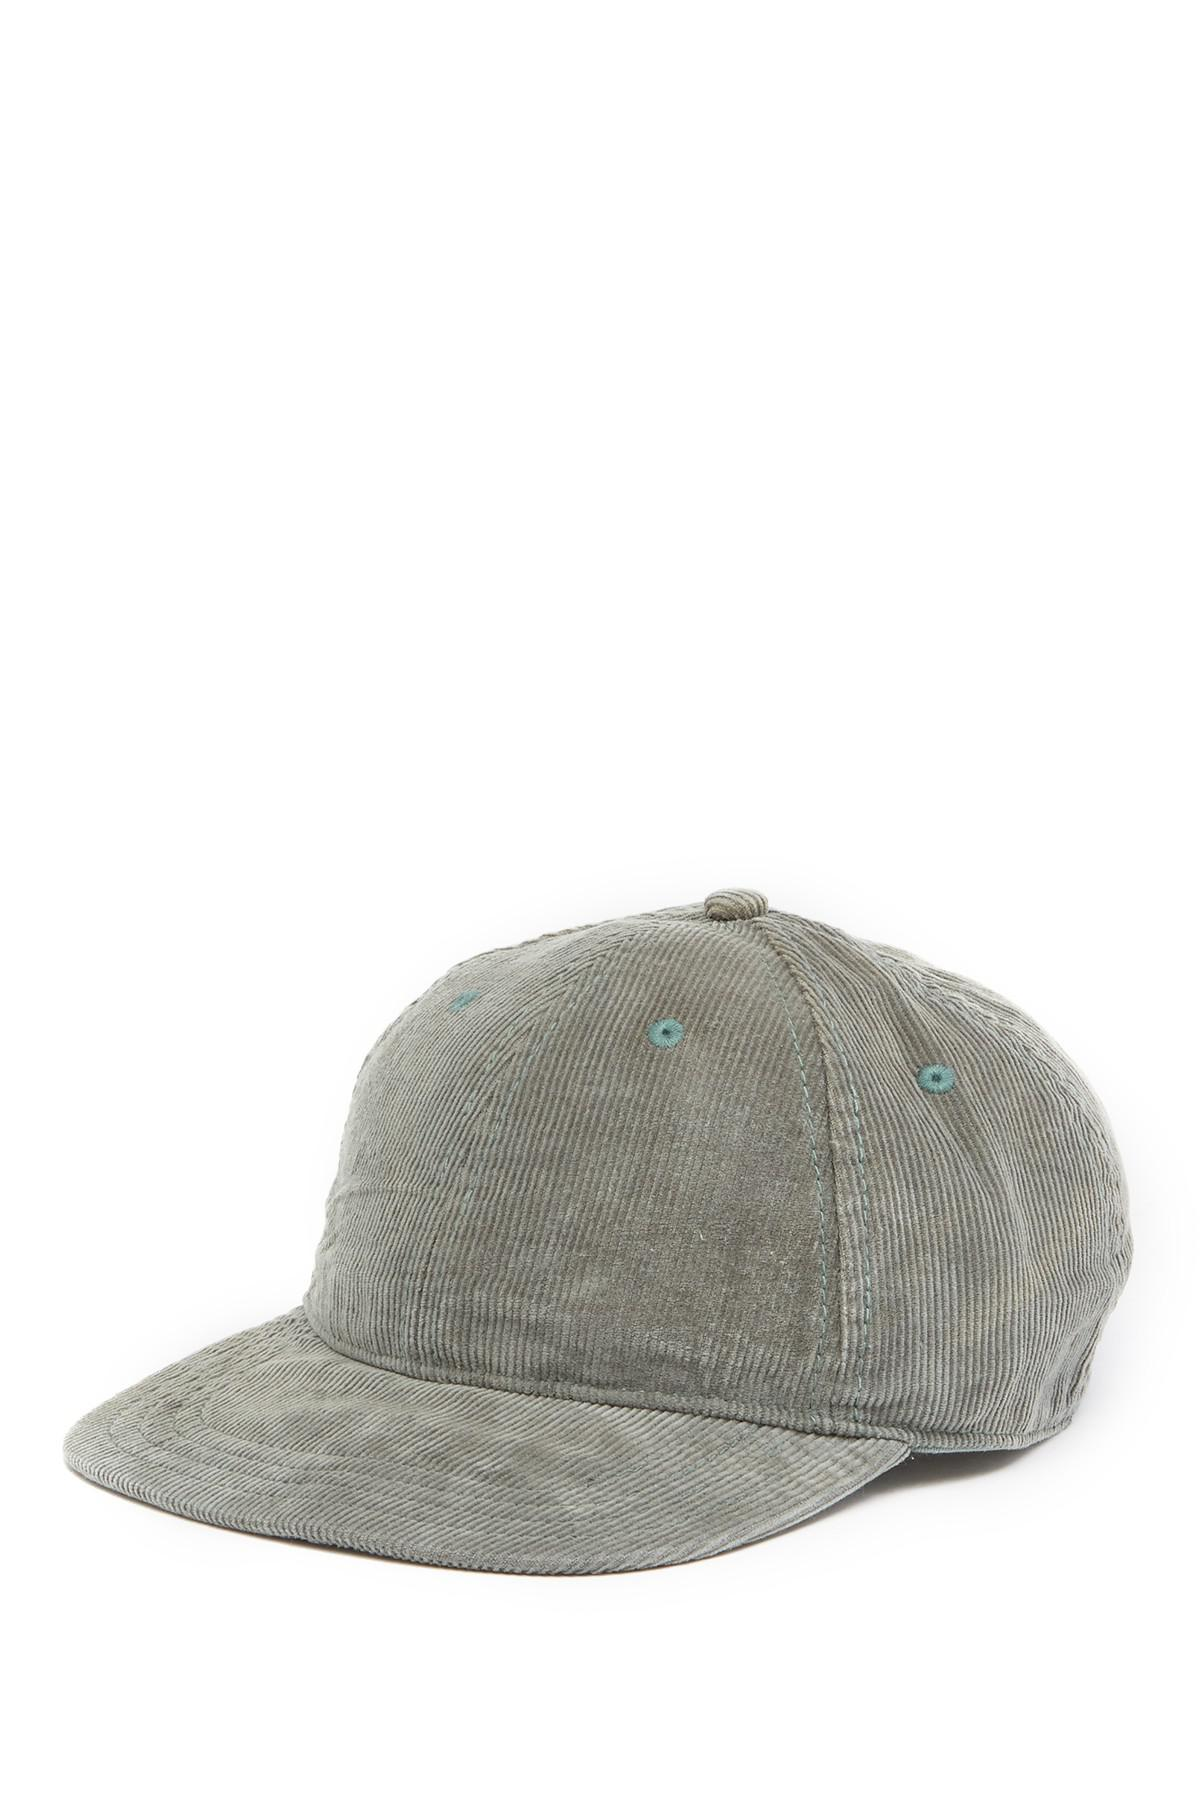 9ad17a932aa96 Lyst - Goorin Bros Fisher Venice Strapback Hat in Gray for Men